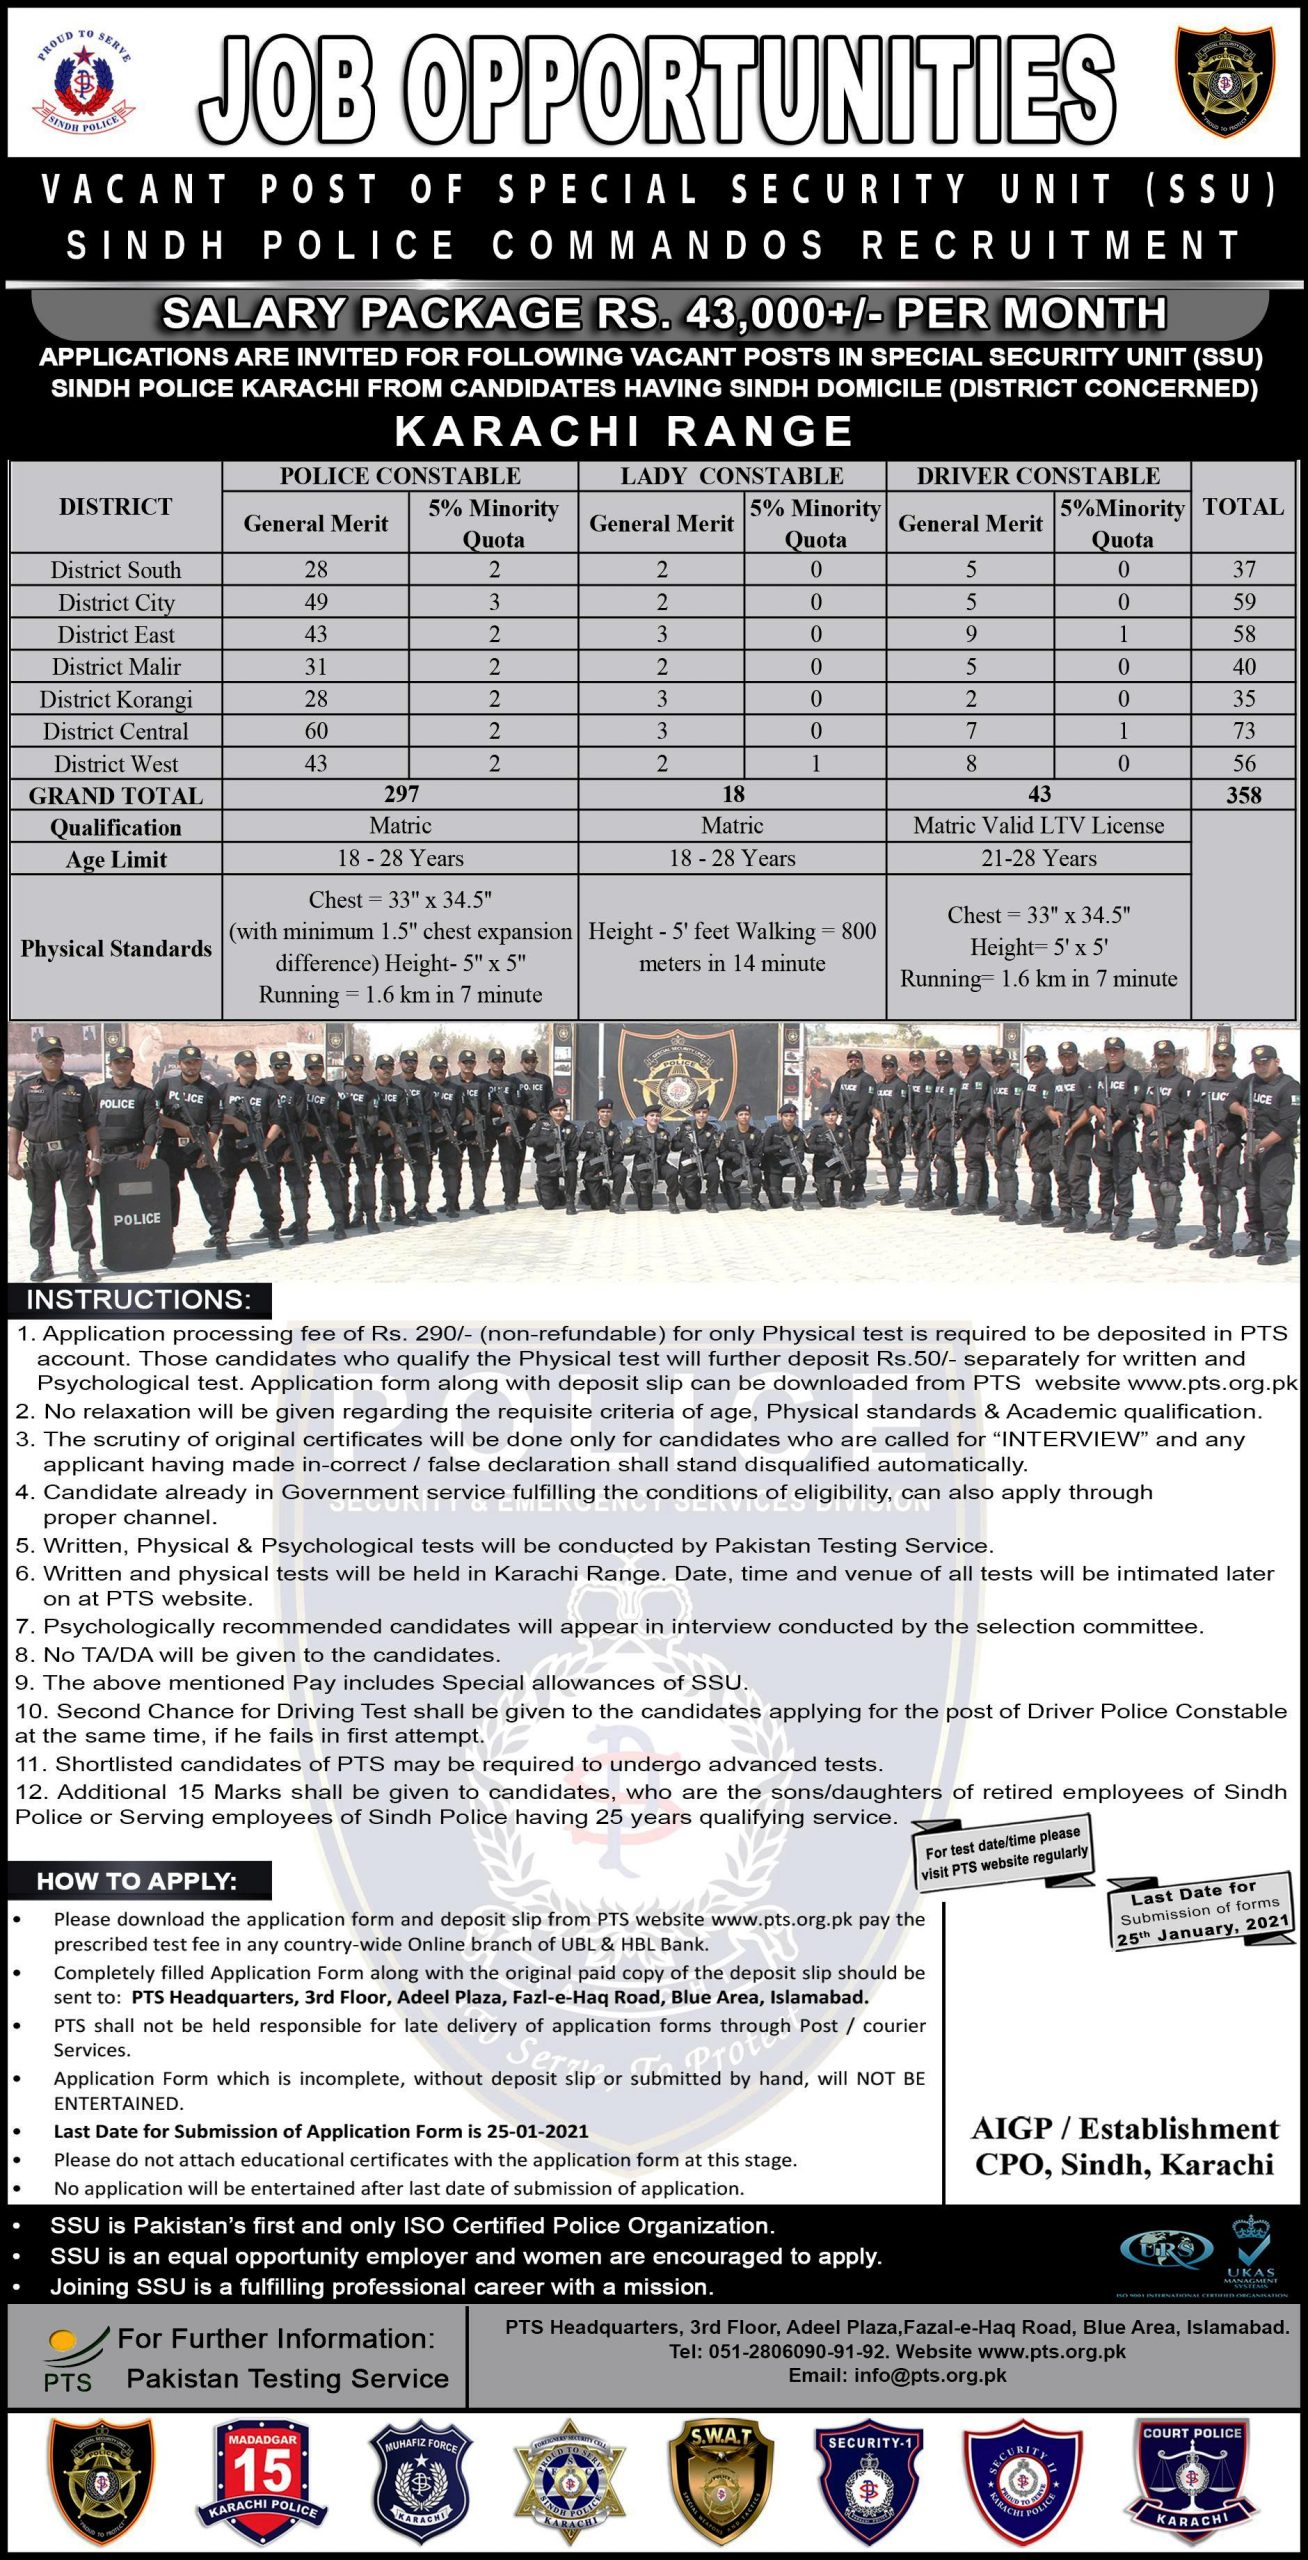 SSU Sindh Police Jobs 2021 PTS Application Form